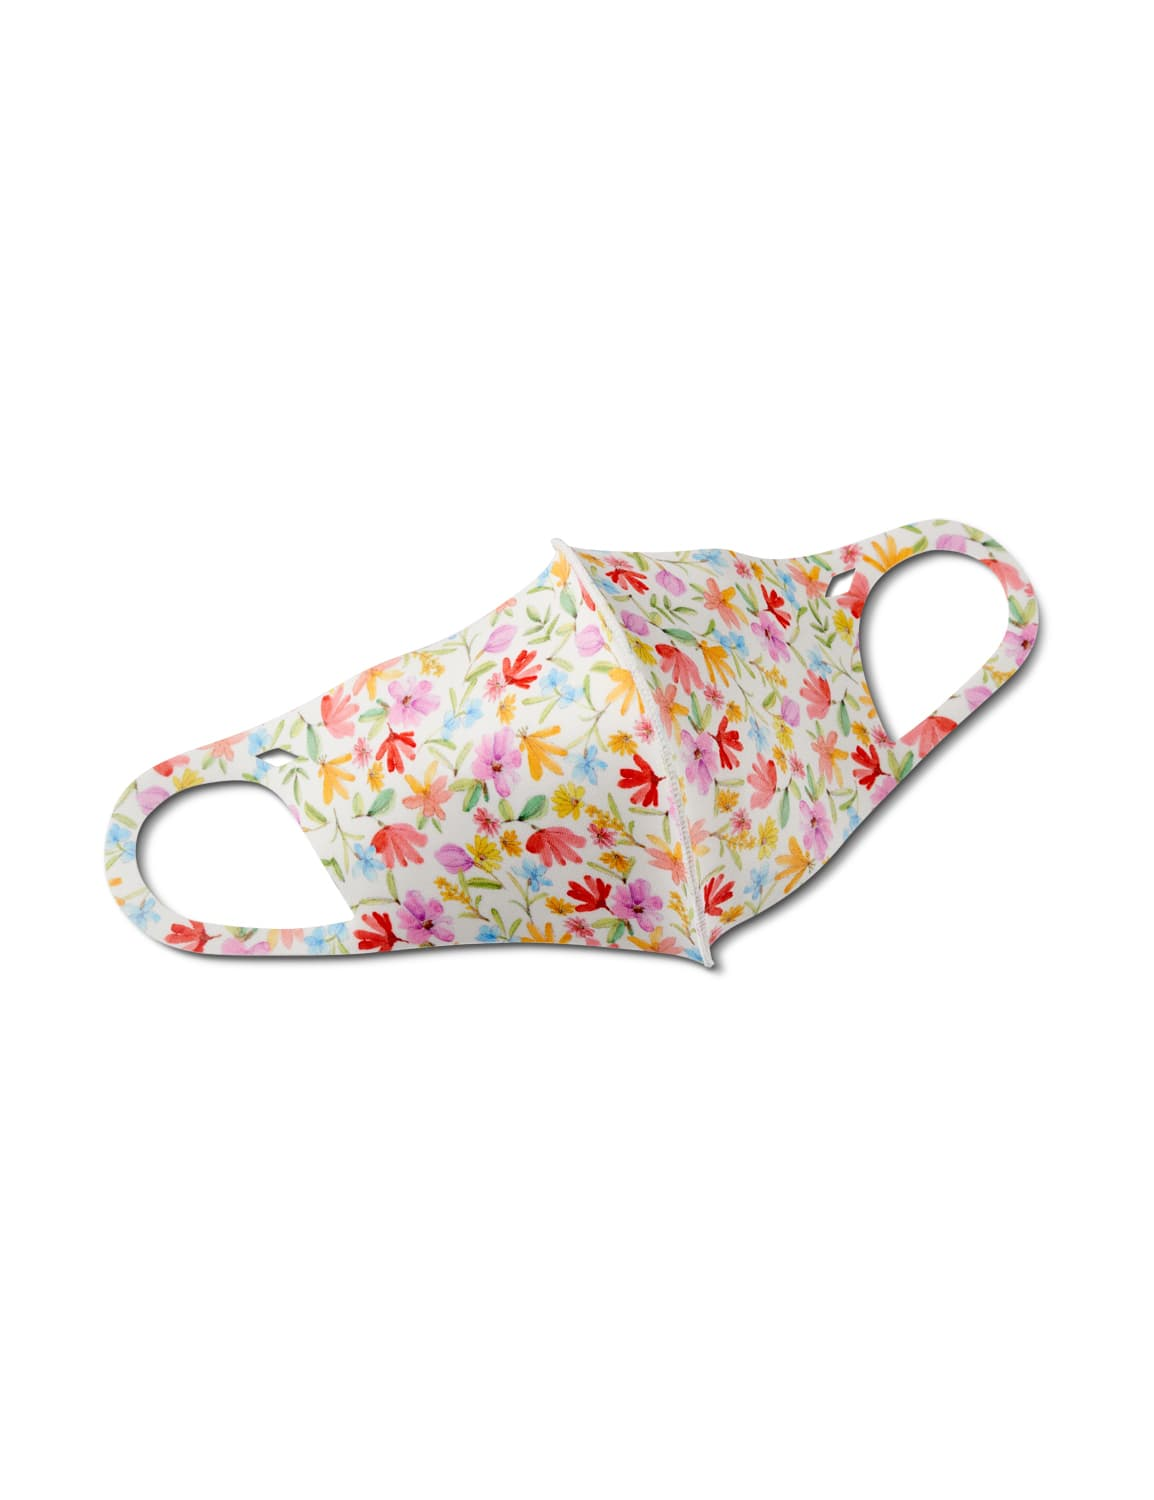 Floral Garden Anti-Bacterial Fashion Face Mask - Multi - Front